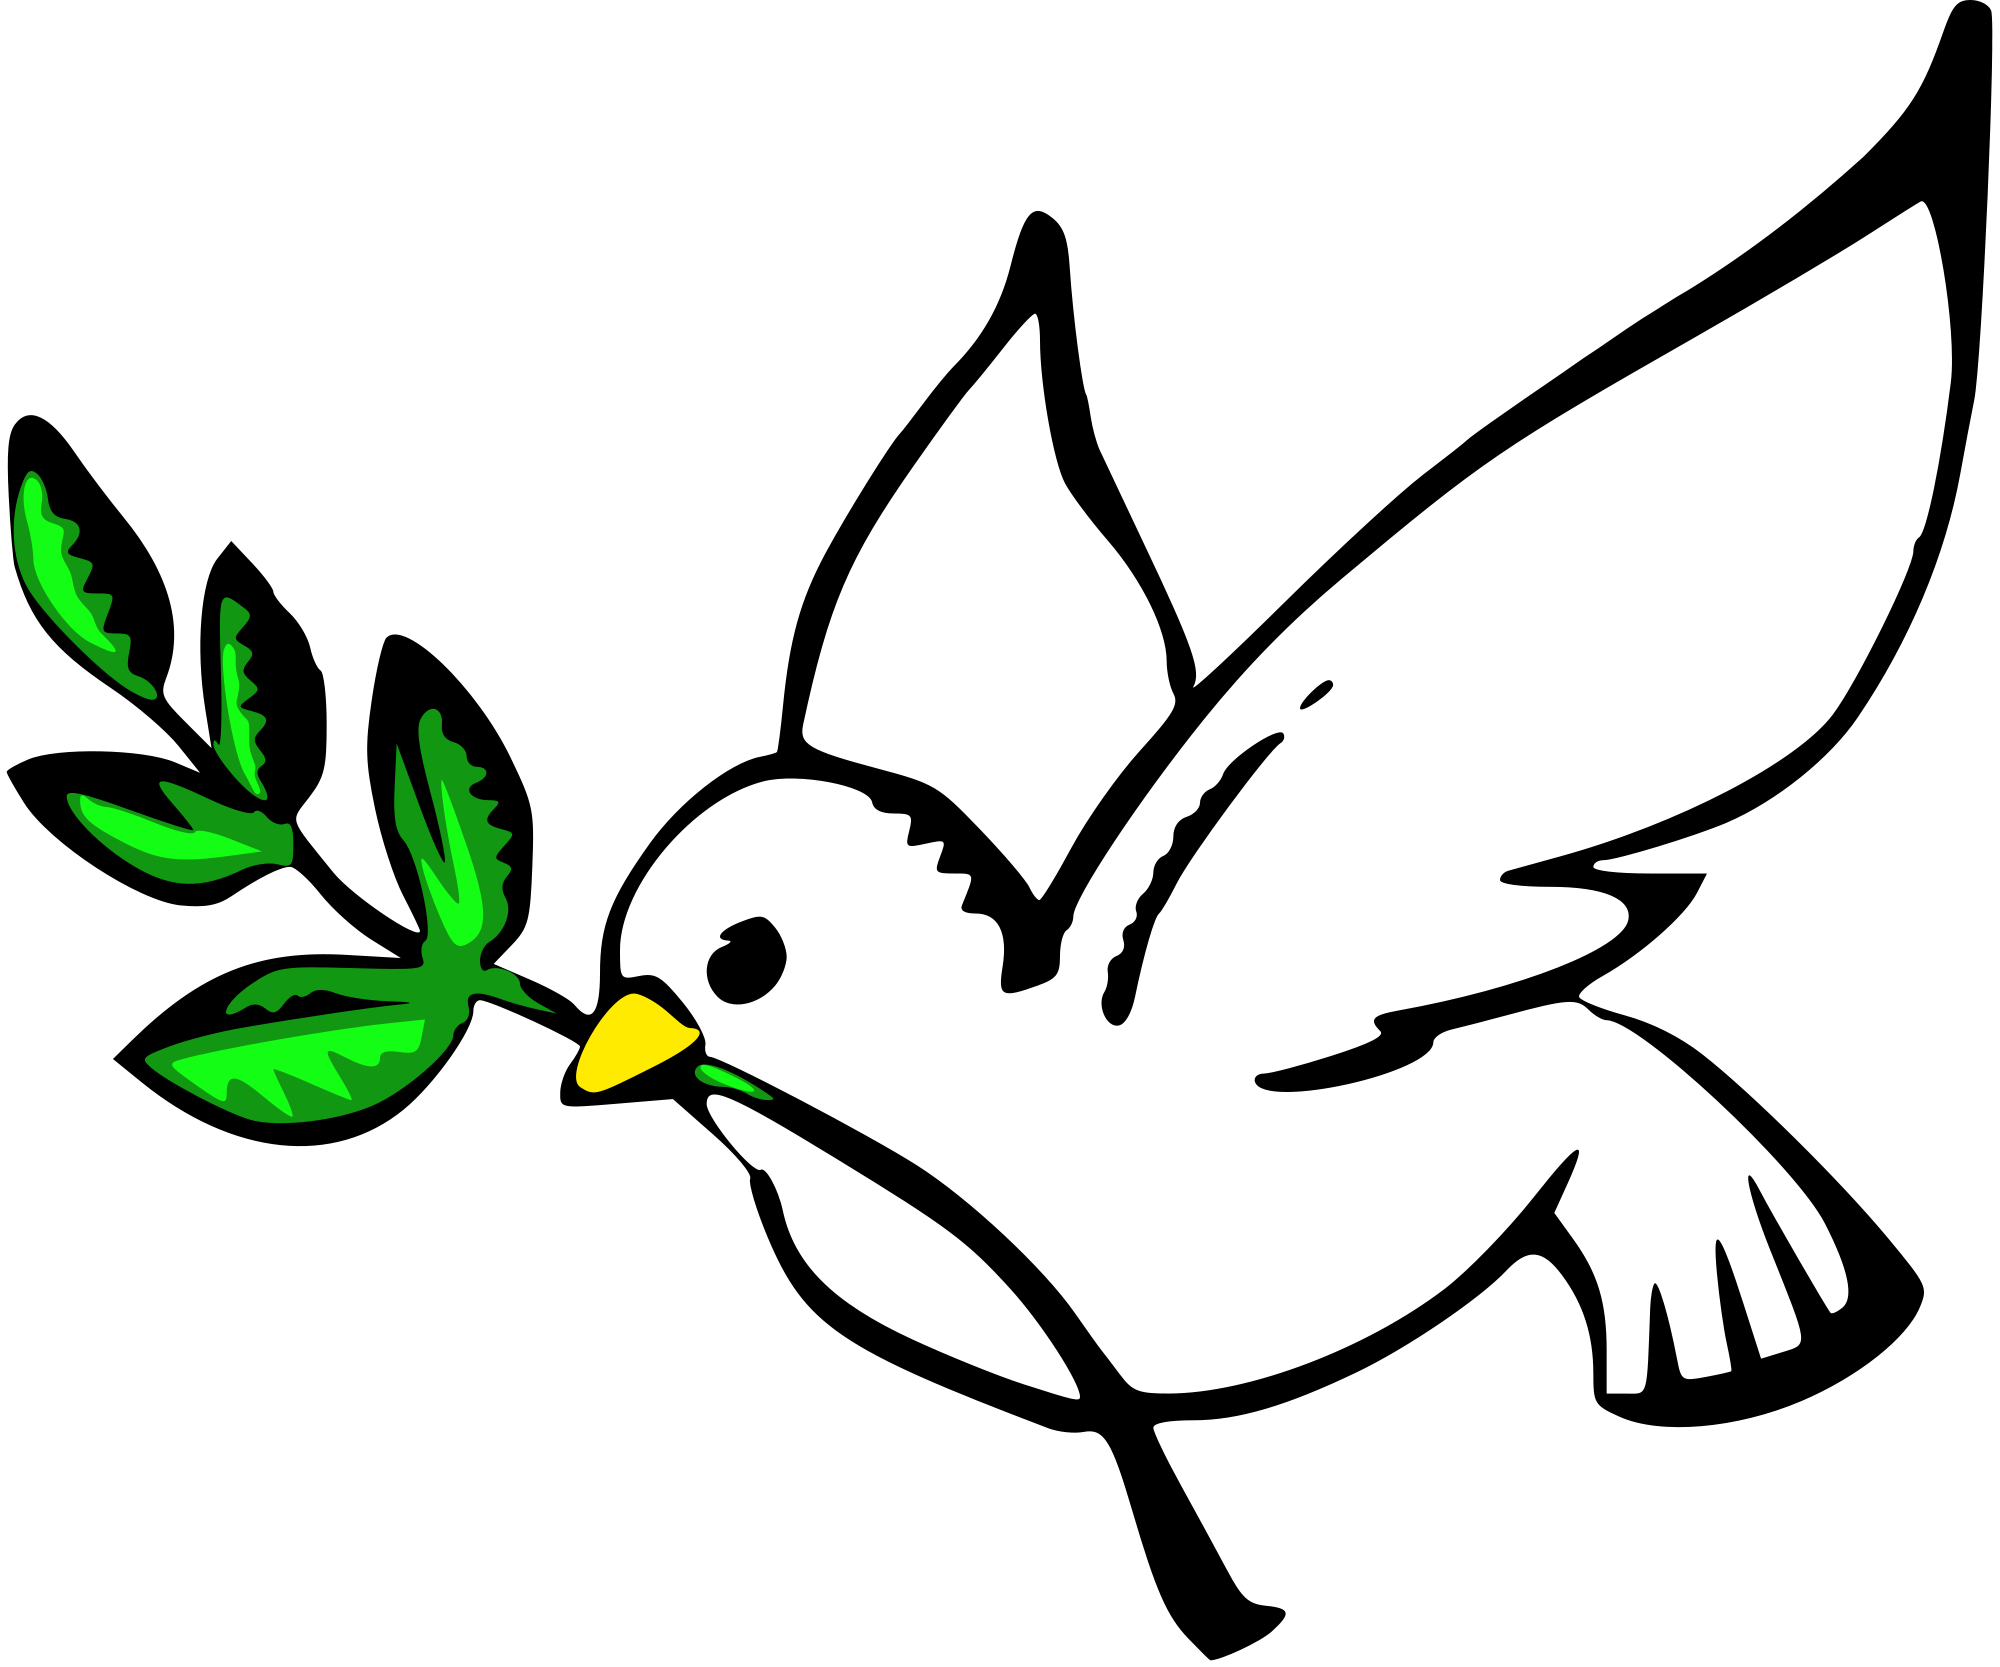 Wrongful death the probate. Peace clipart non violence